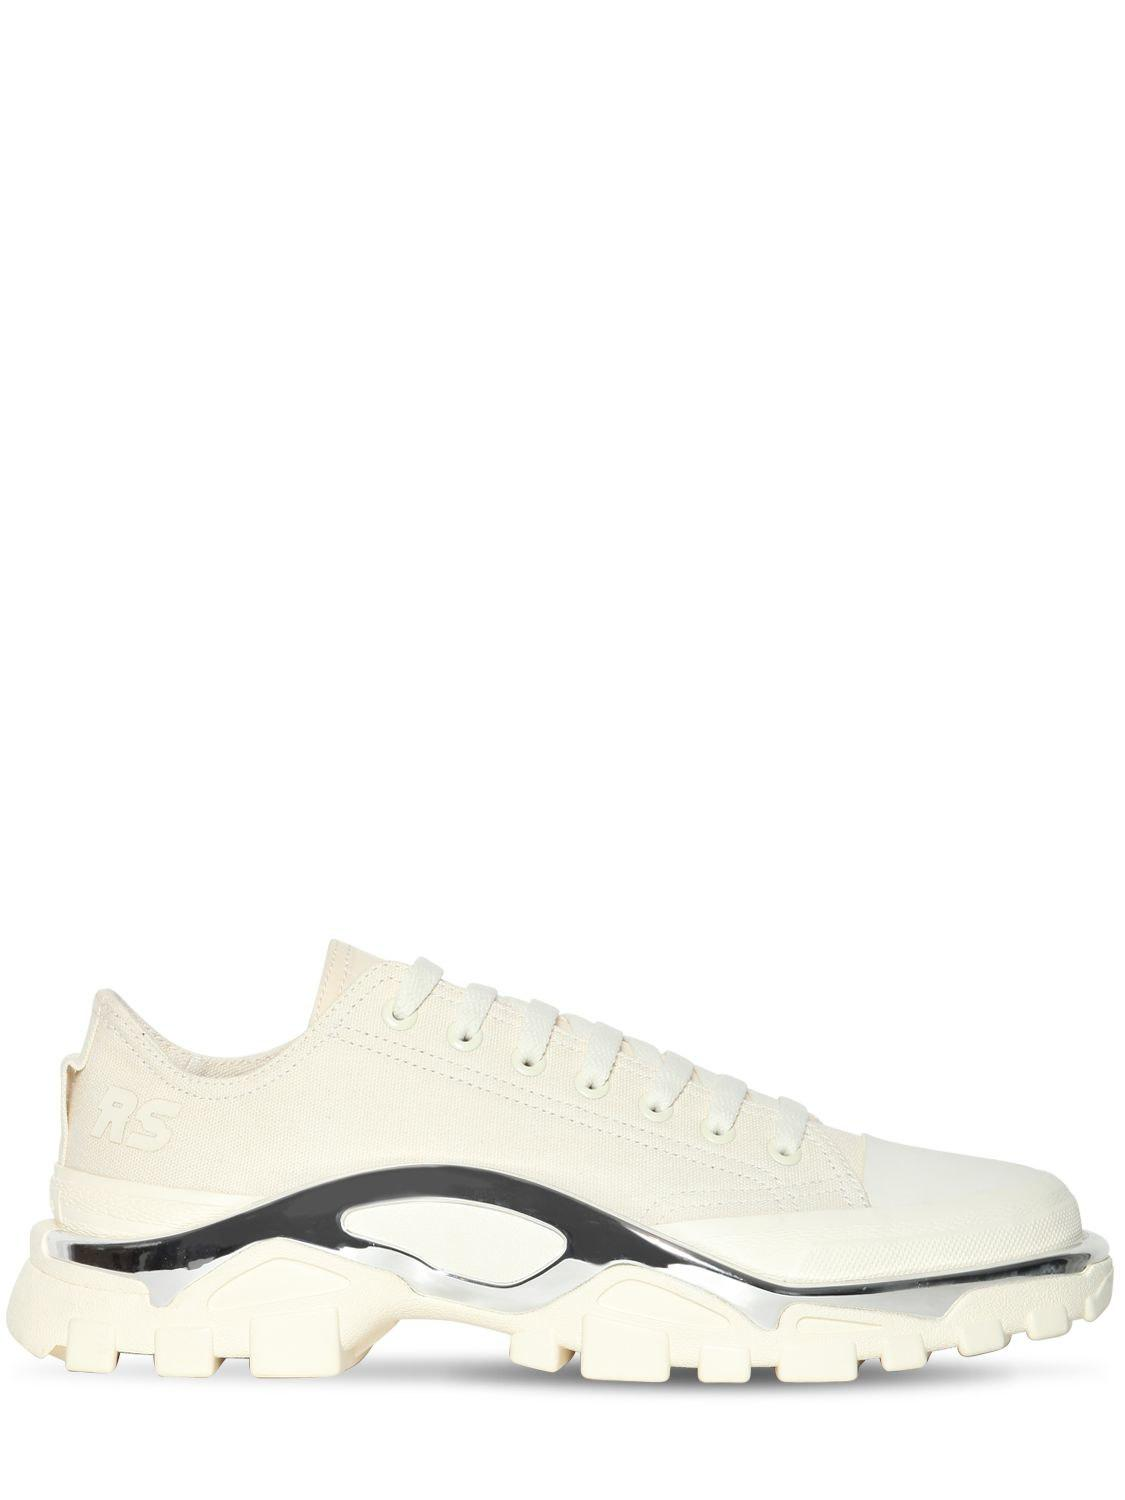 reputable site fda7c db39d adidas By Raf Simons. Mens White Rs Detroit Runner Sneakers